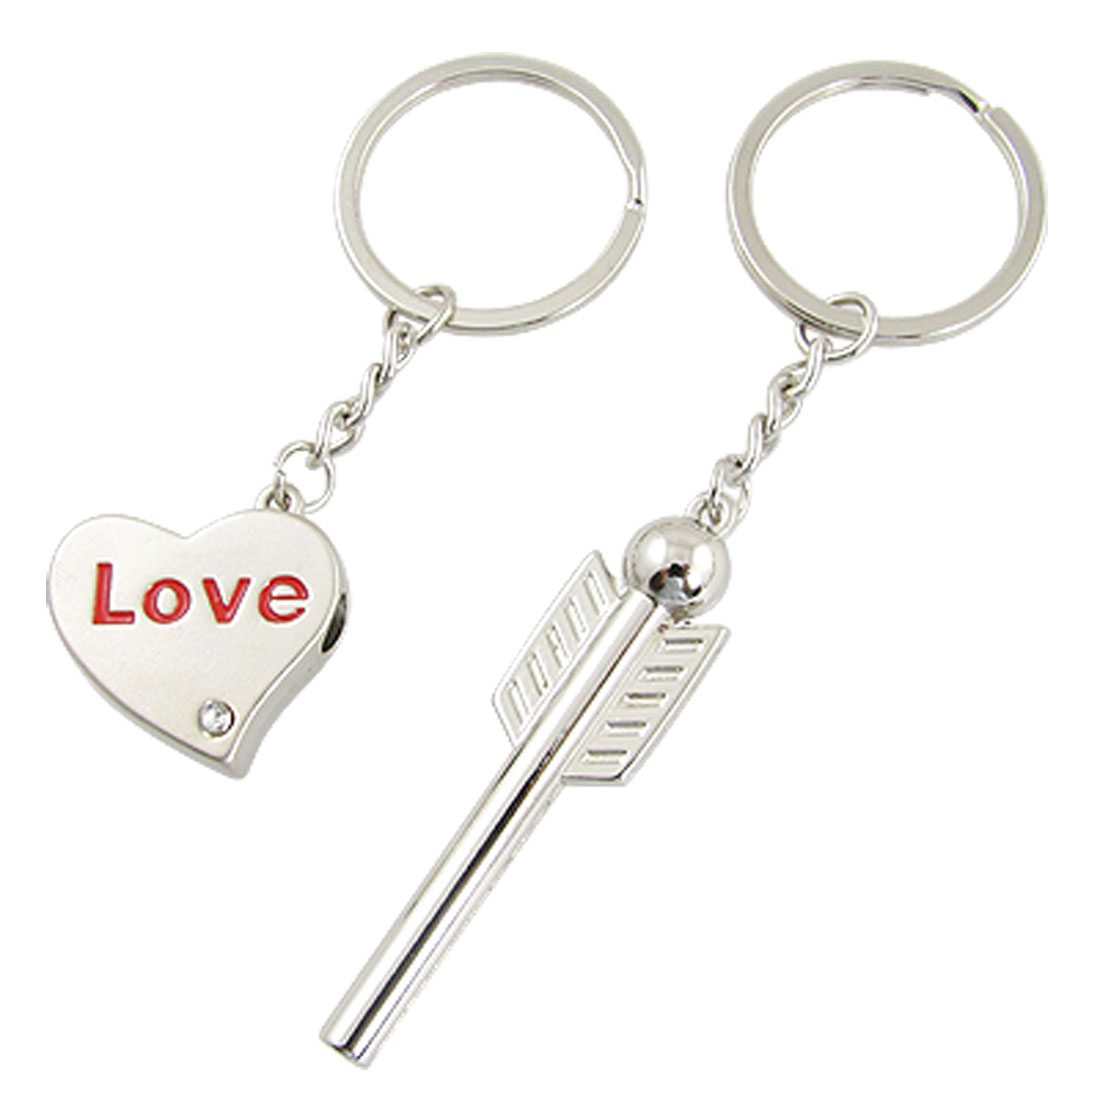 Kill a Heart w. One Arrow Alloy Lover Keychain Keyring